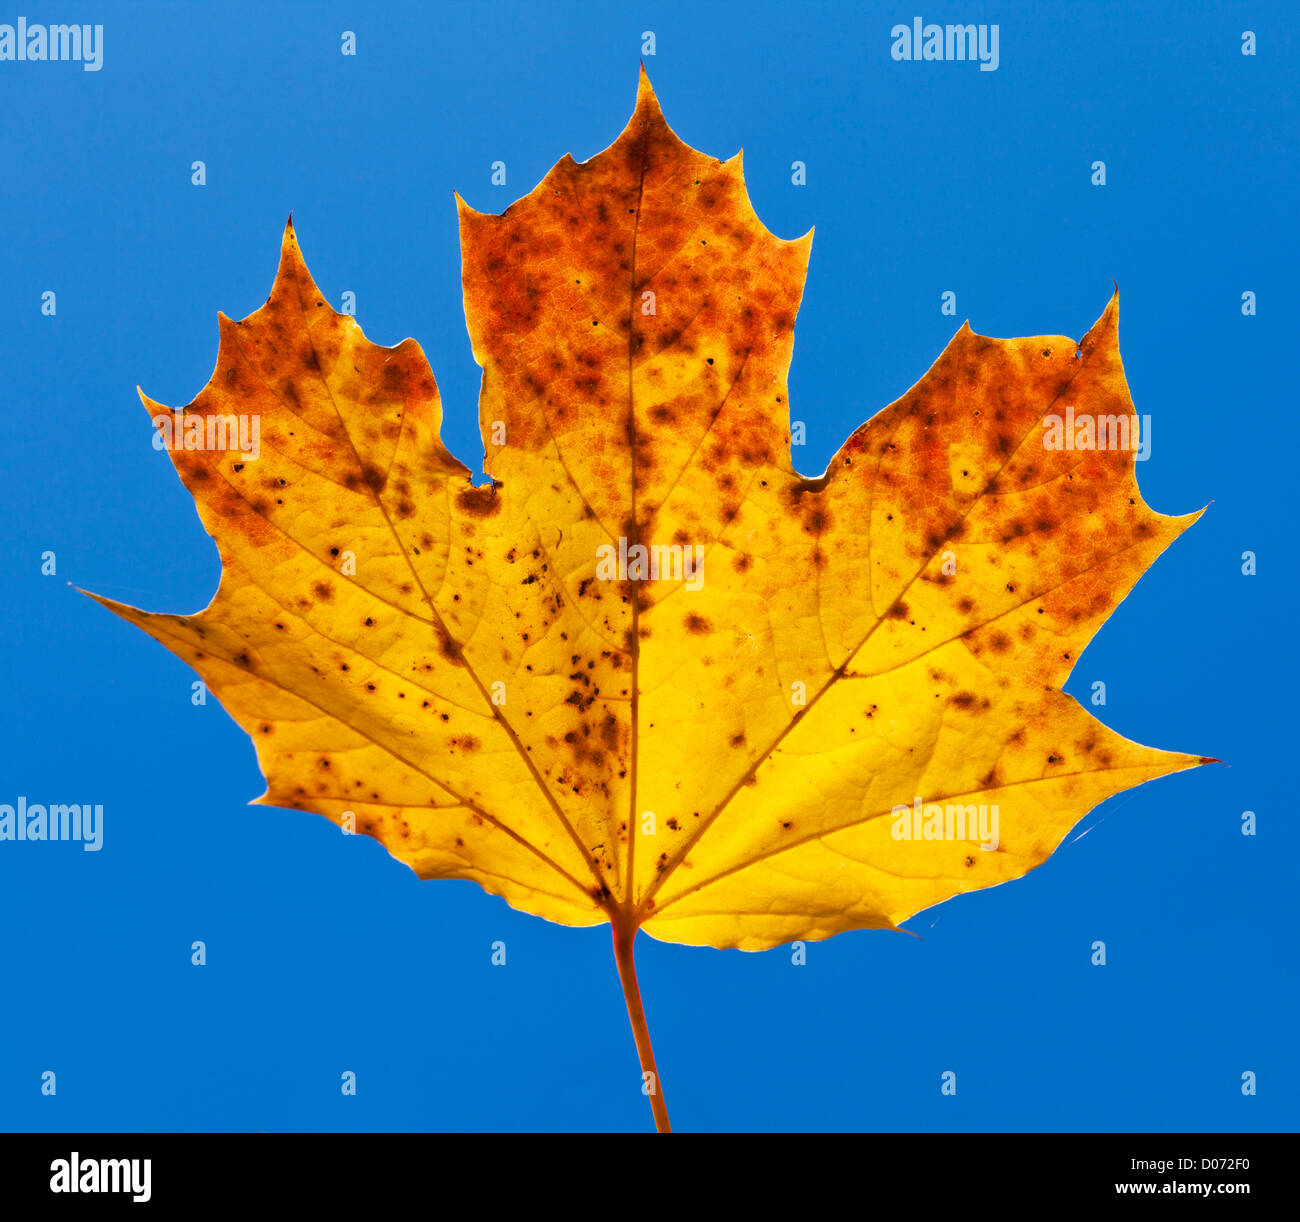 Autumn Sycamore Leaf close up against blue sky - Stock Image